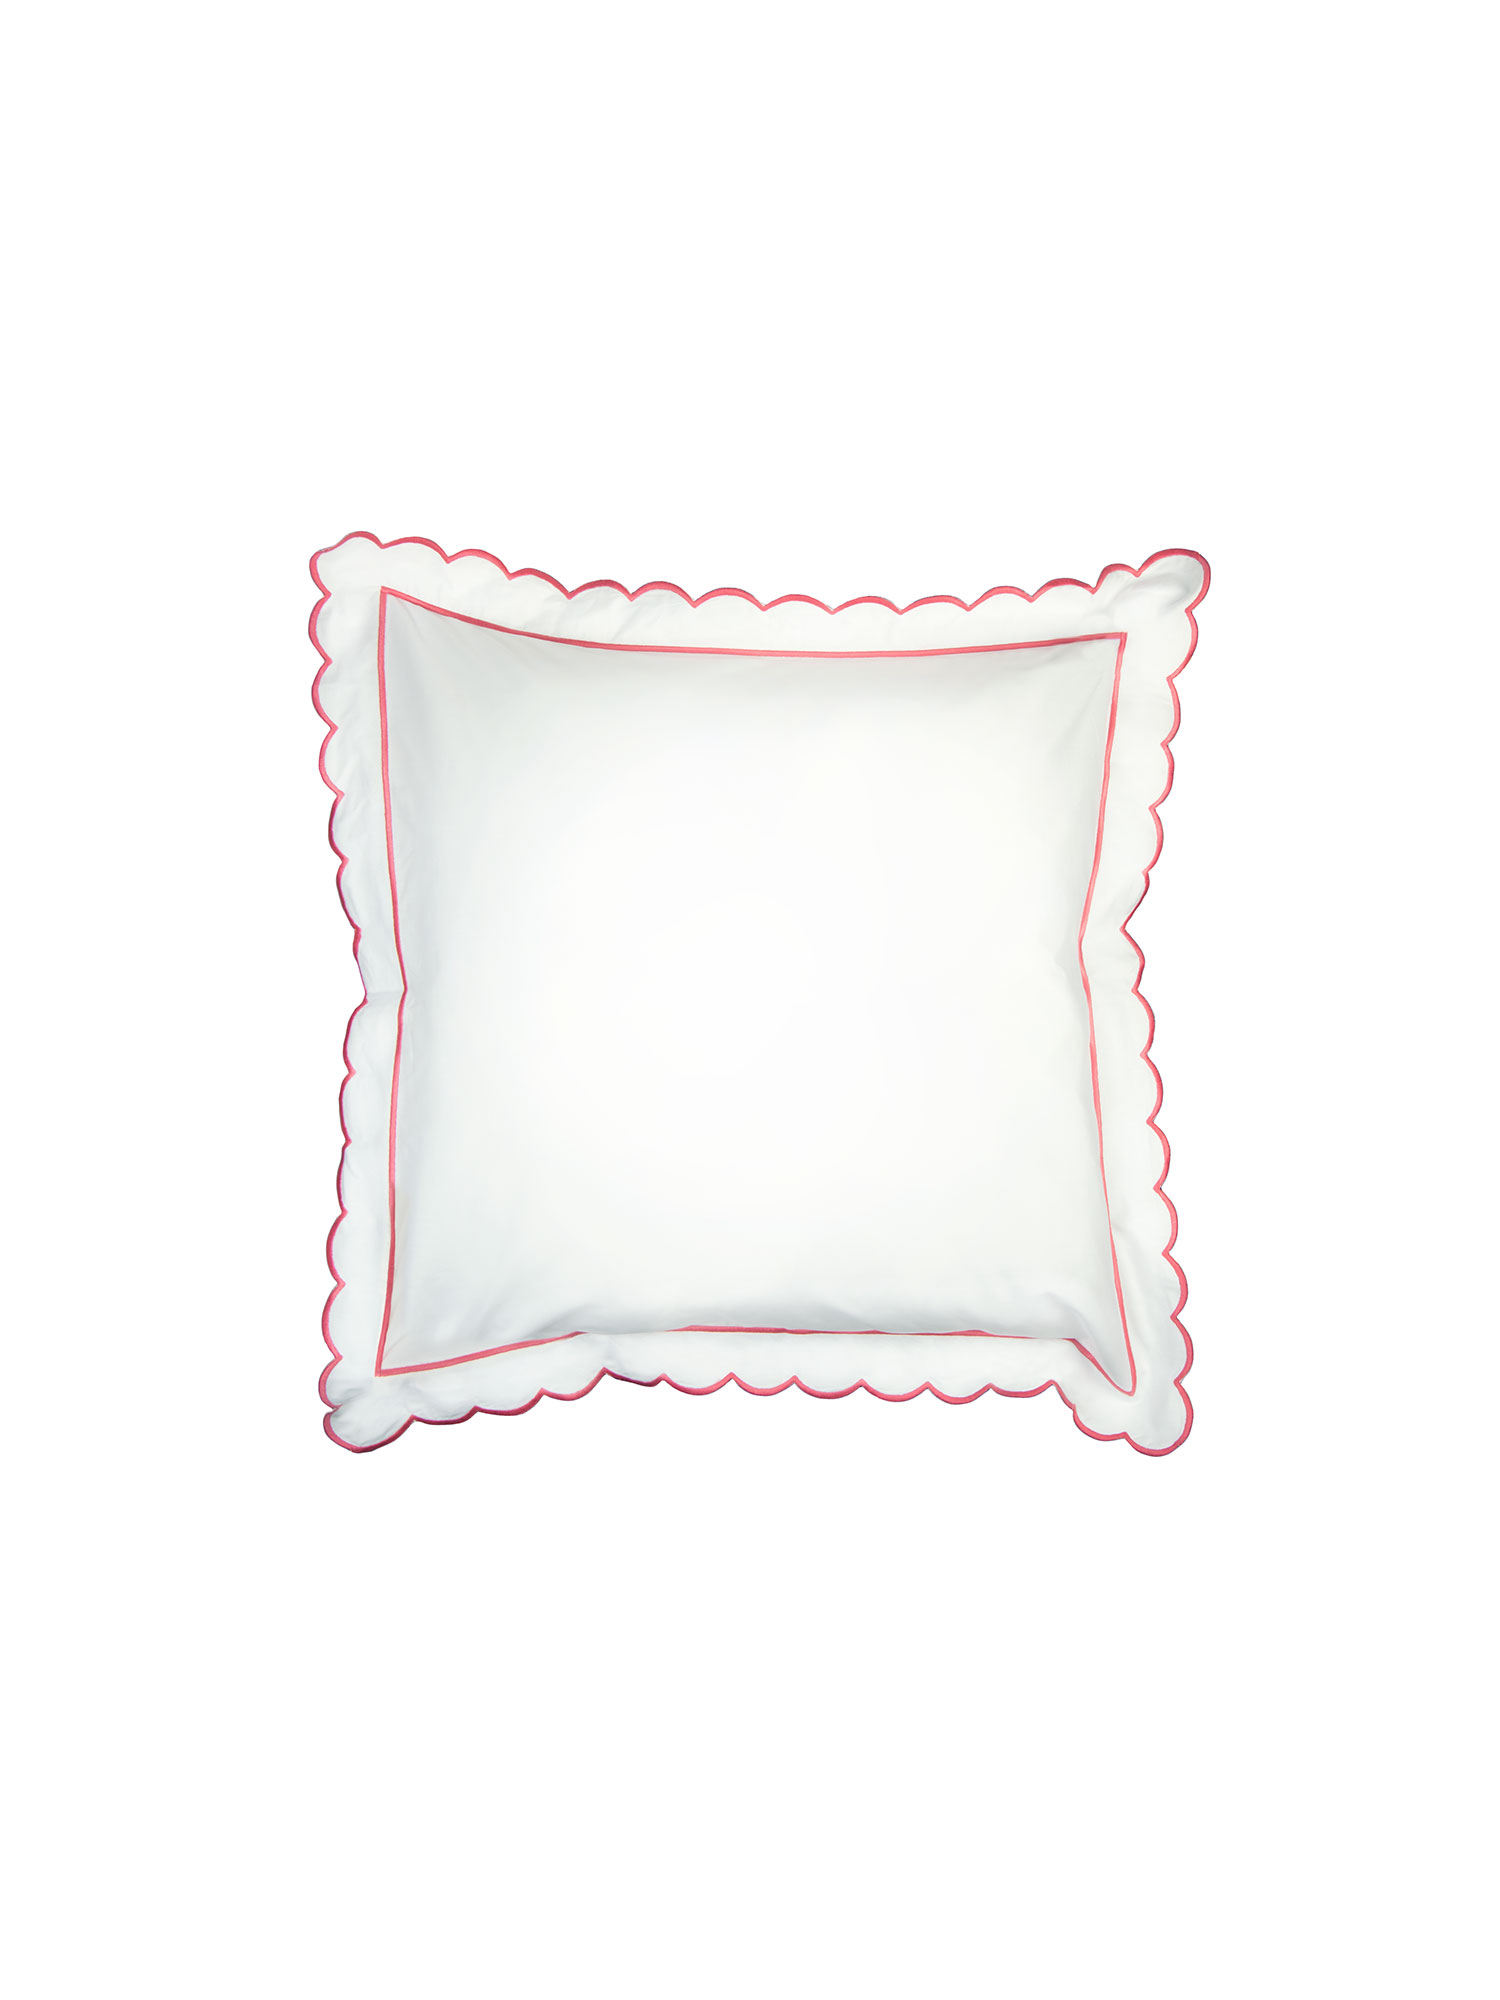 wayfair walmart solid large of color pillowcase coral pillow target cases covers size throw pillows